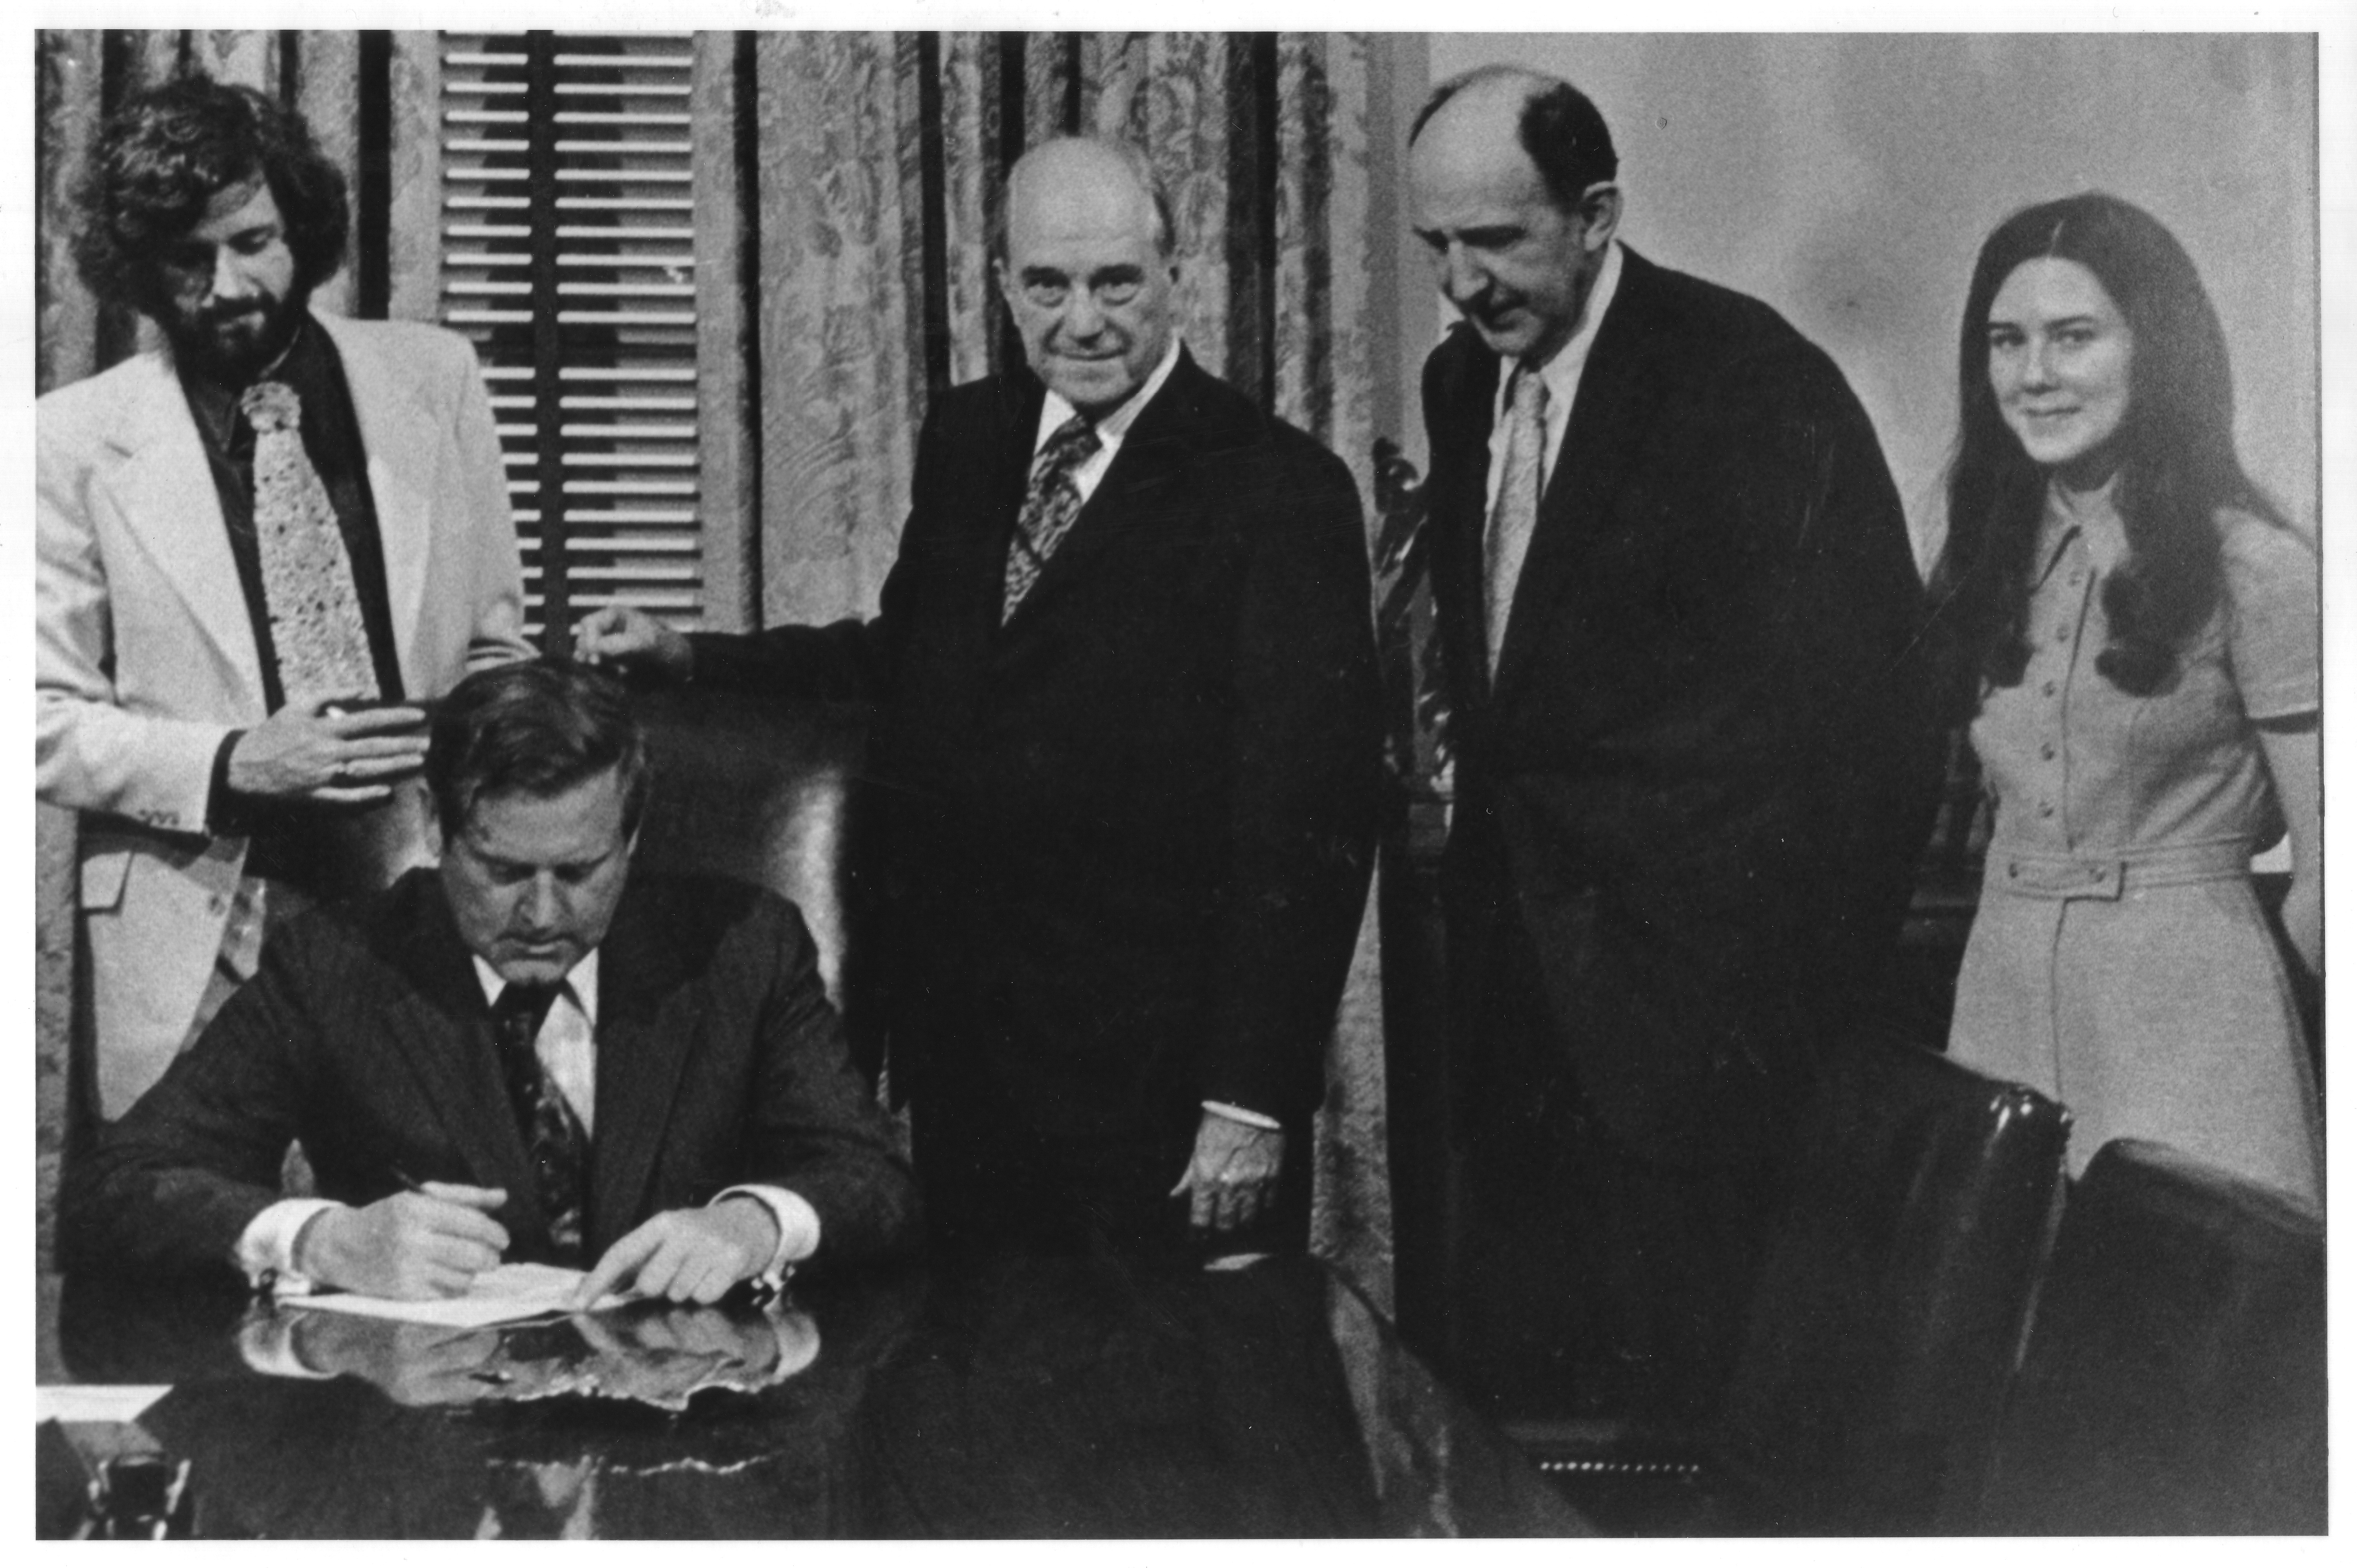 (April 7, 1972) Governor A. Linwood Holton signs H-210 separating George Mason College from the U.Va; George Mason University Photograph Collection, 1950s-1999 Box 2, Folder 9, CC BY-SA 4.0, http://commons.wikimedia.org/w/index.php?curid=40992649